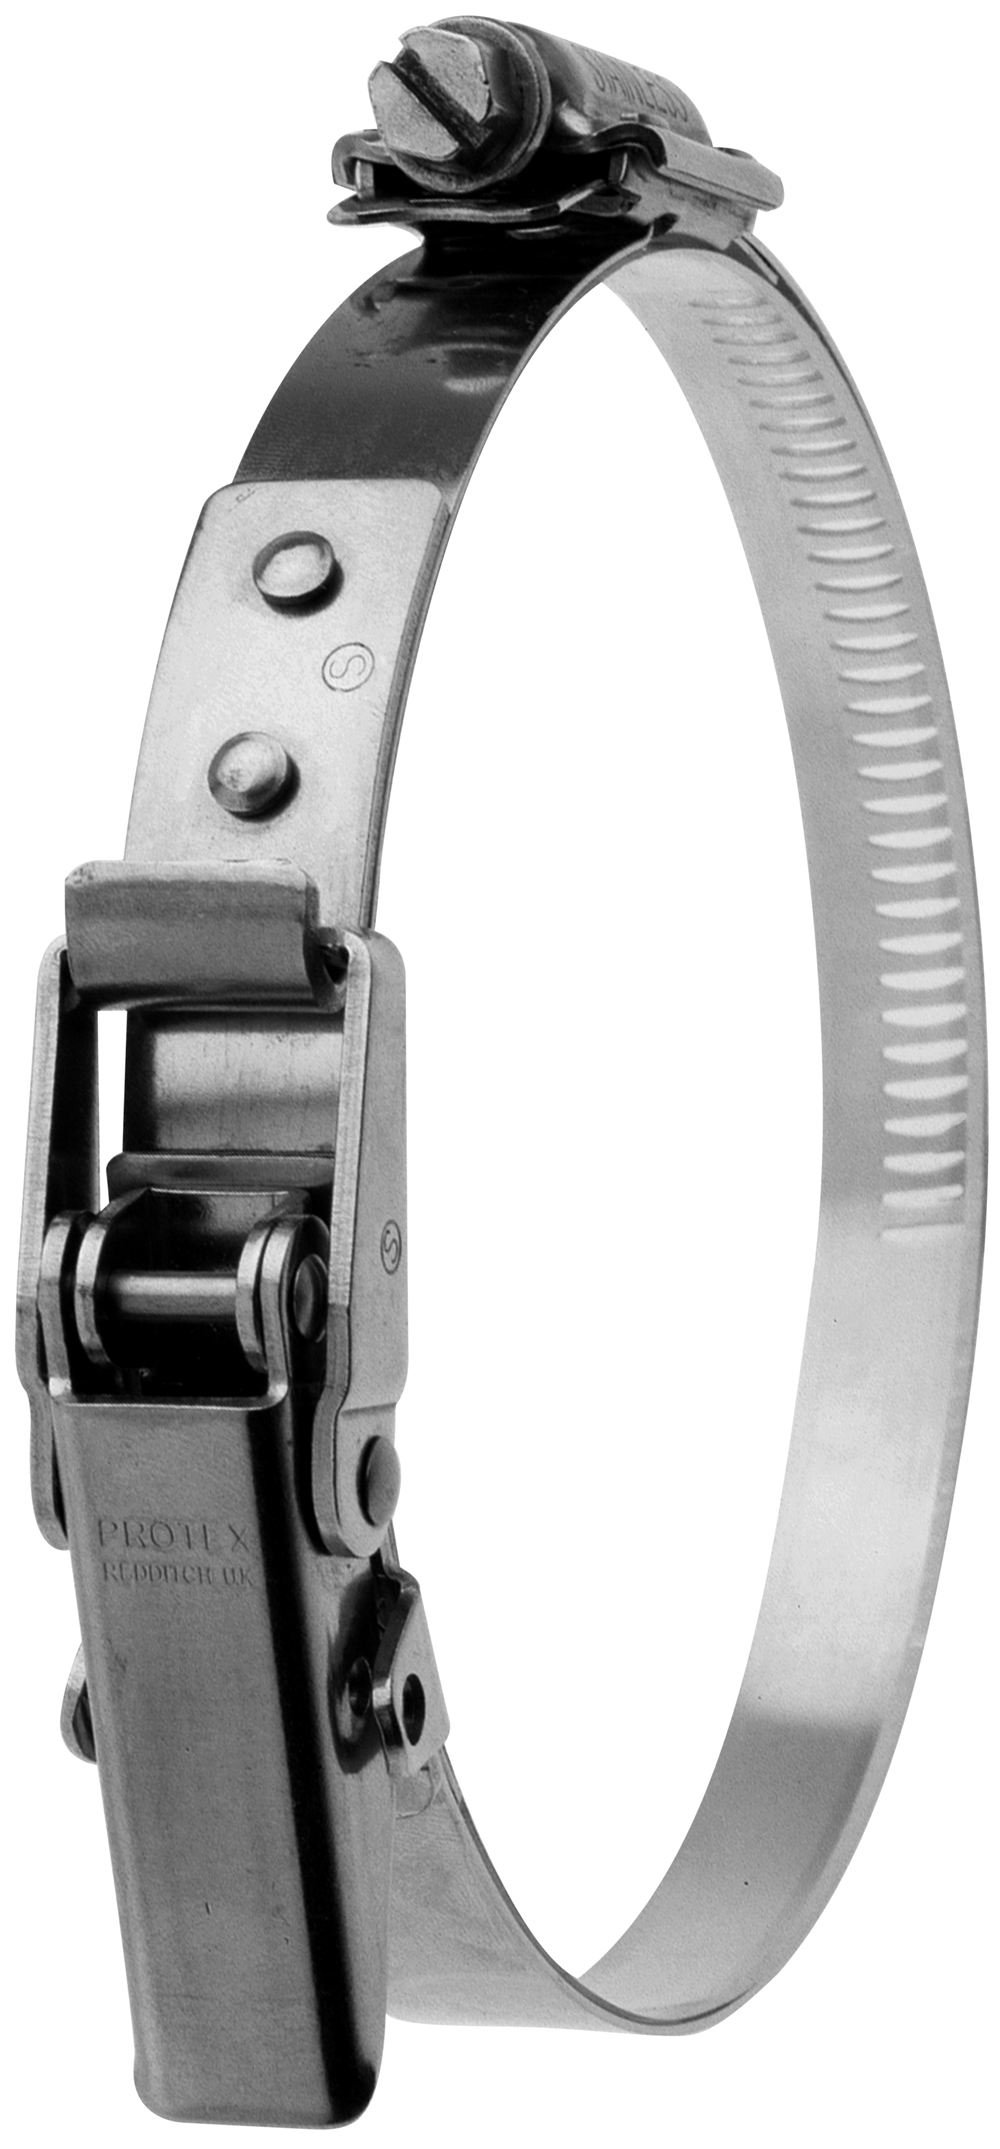 210-255mm Diameter Hi-Torque Rigid Claw Stainless Steel Quick Release Bandclamp (Natural)